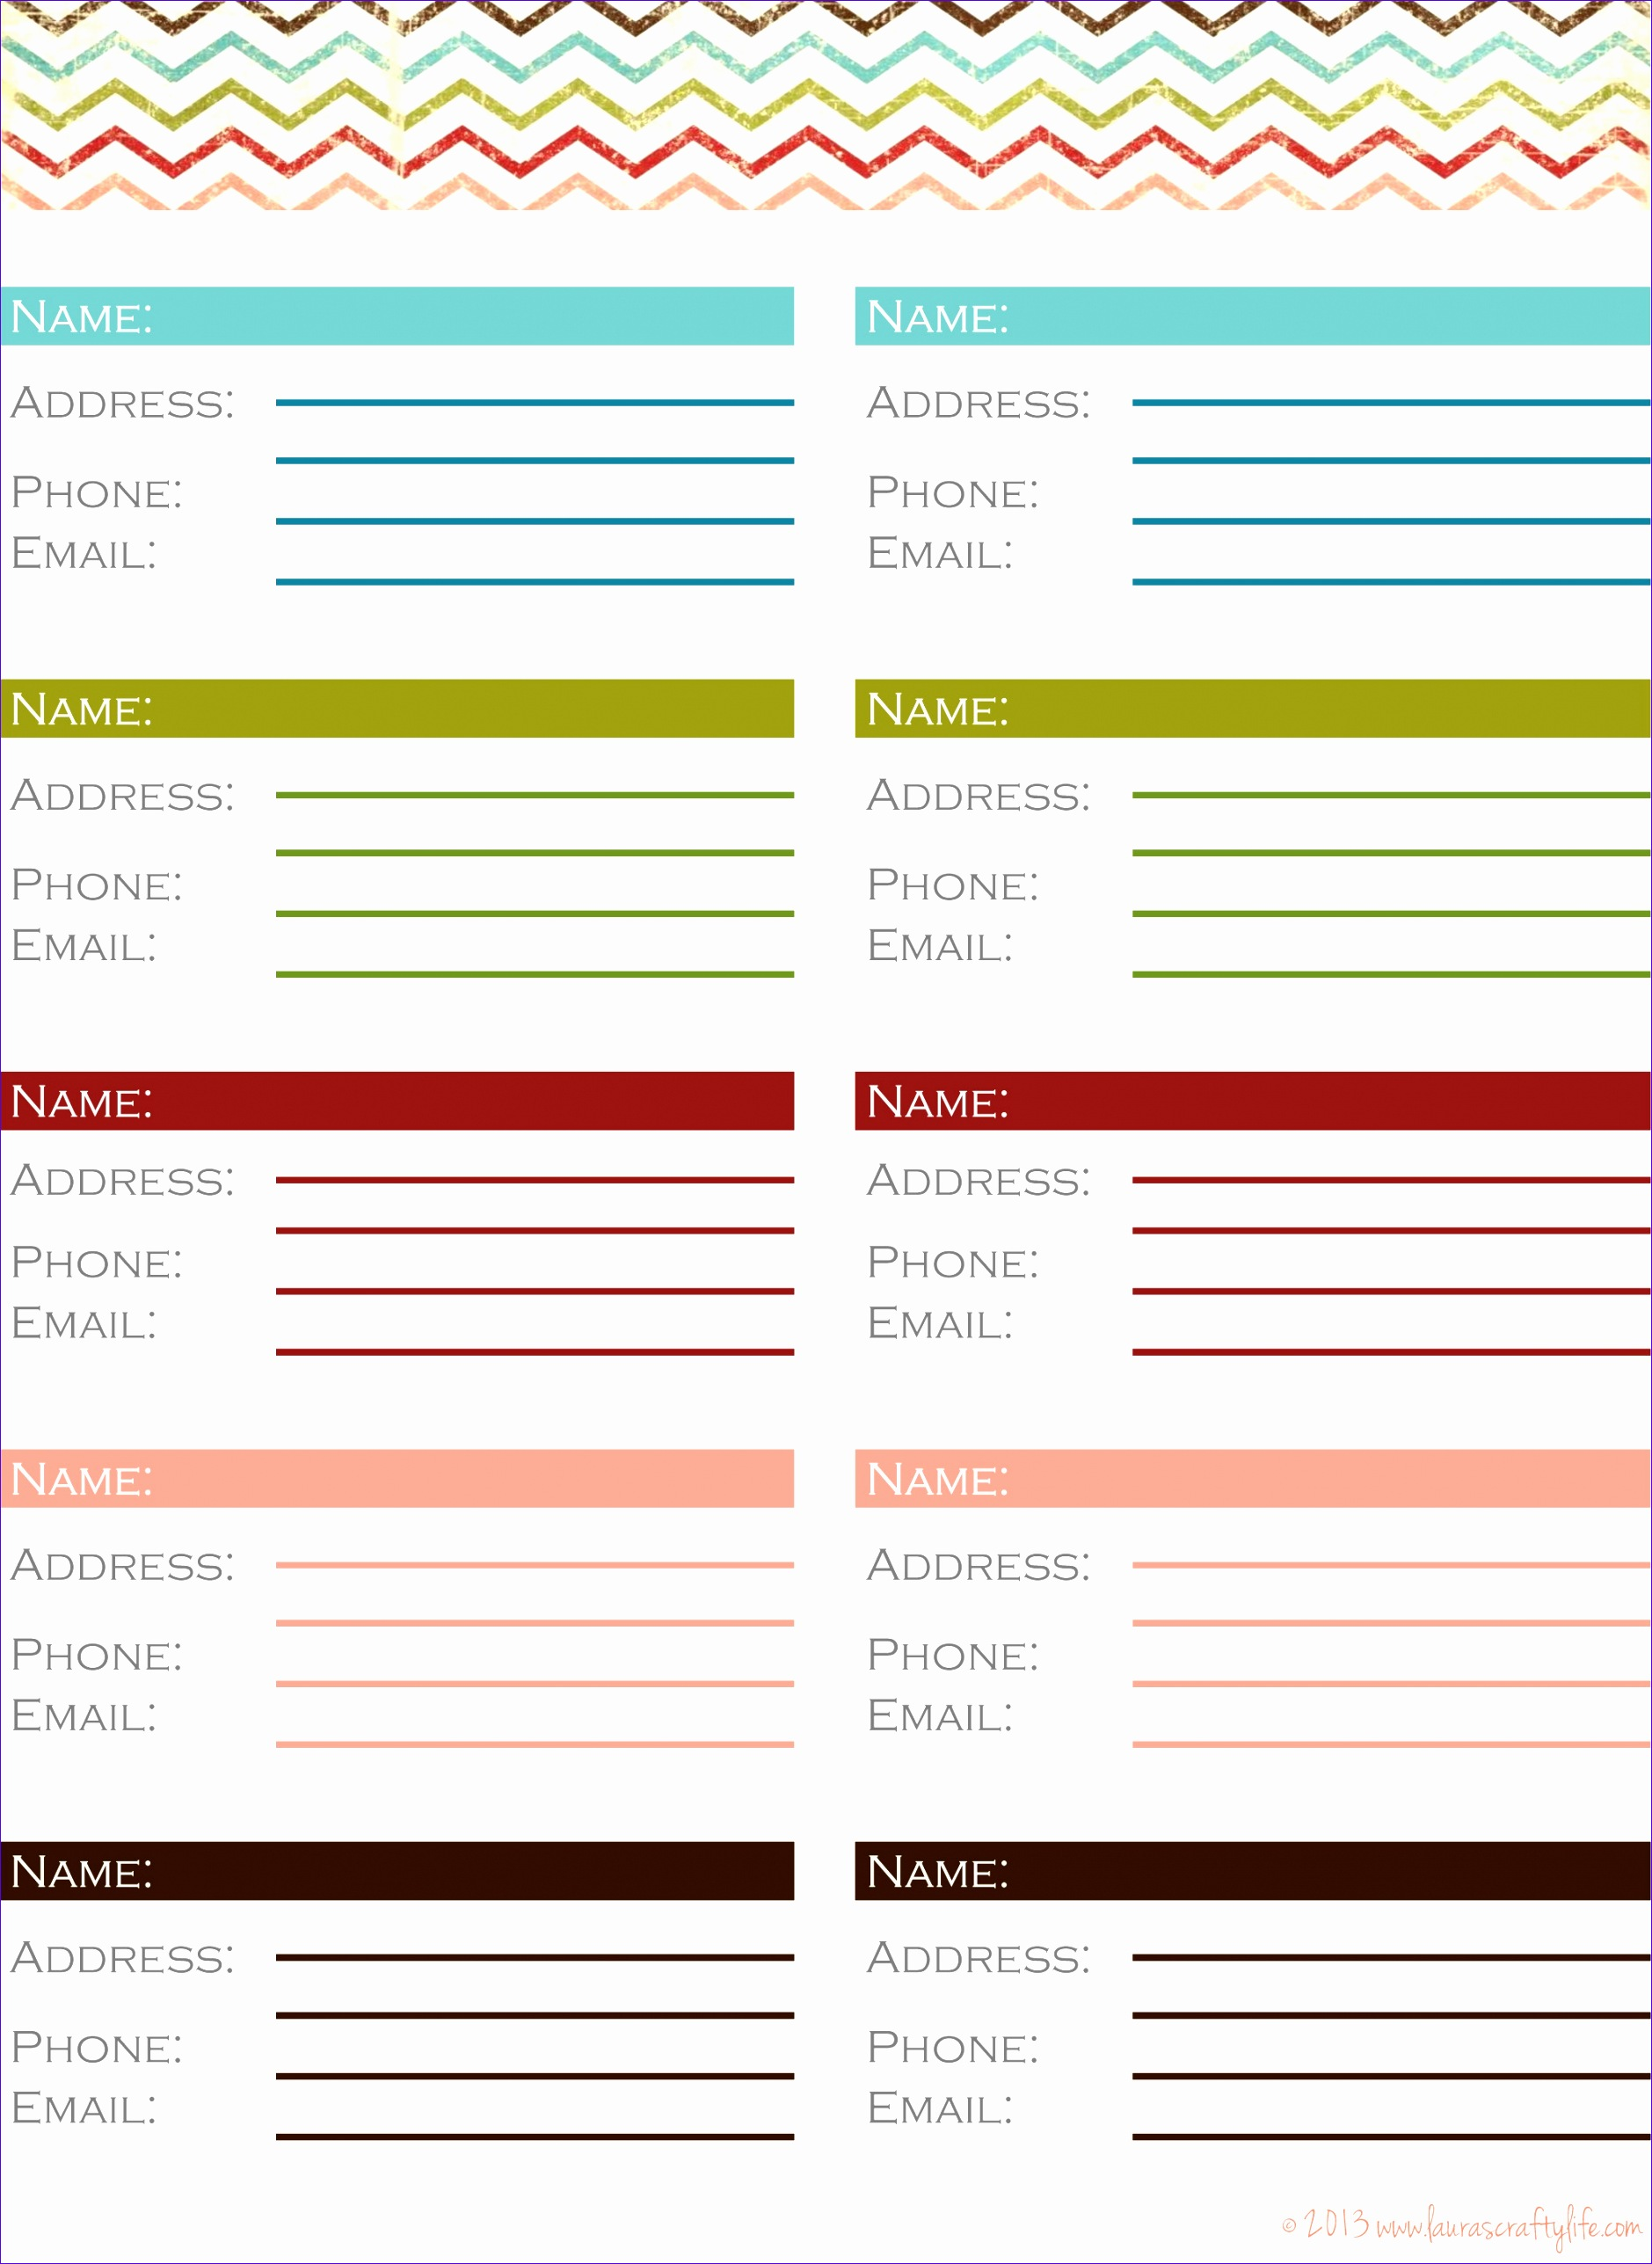 10 Phone Book Excel Template